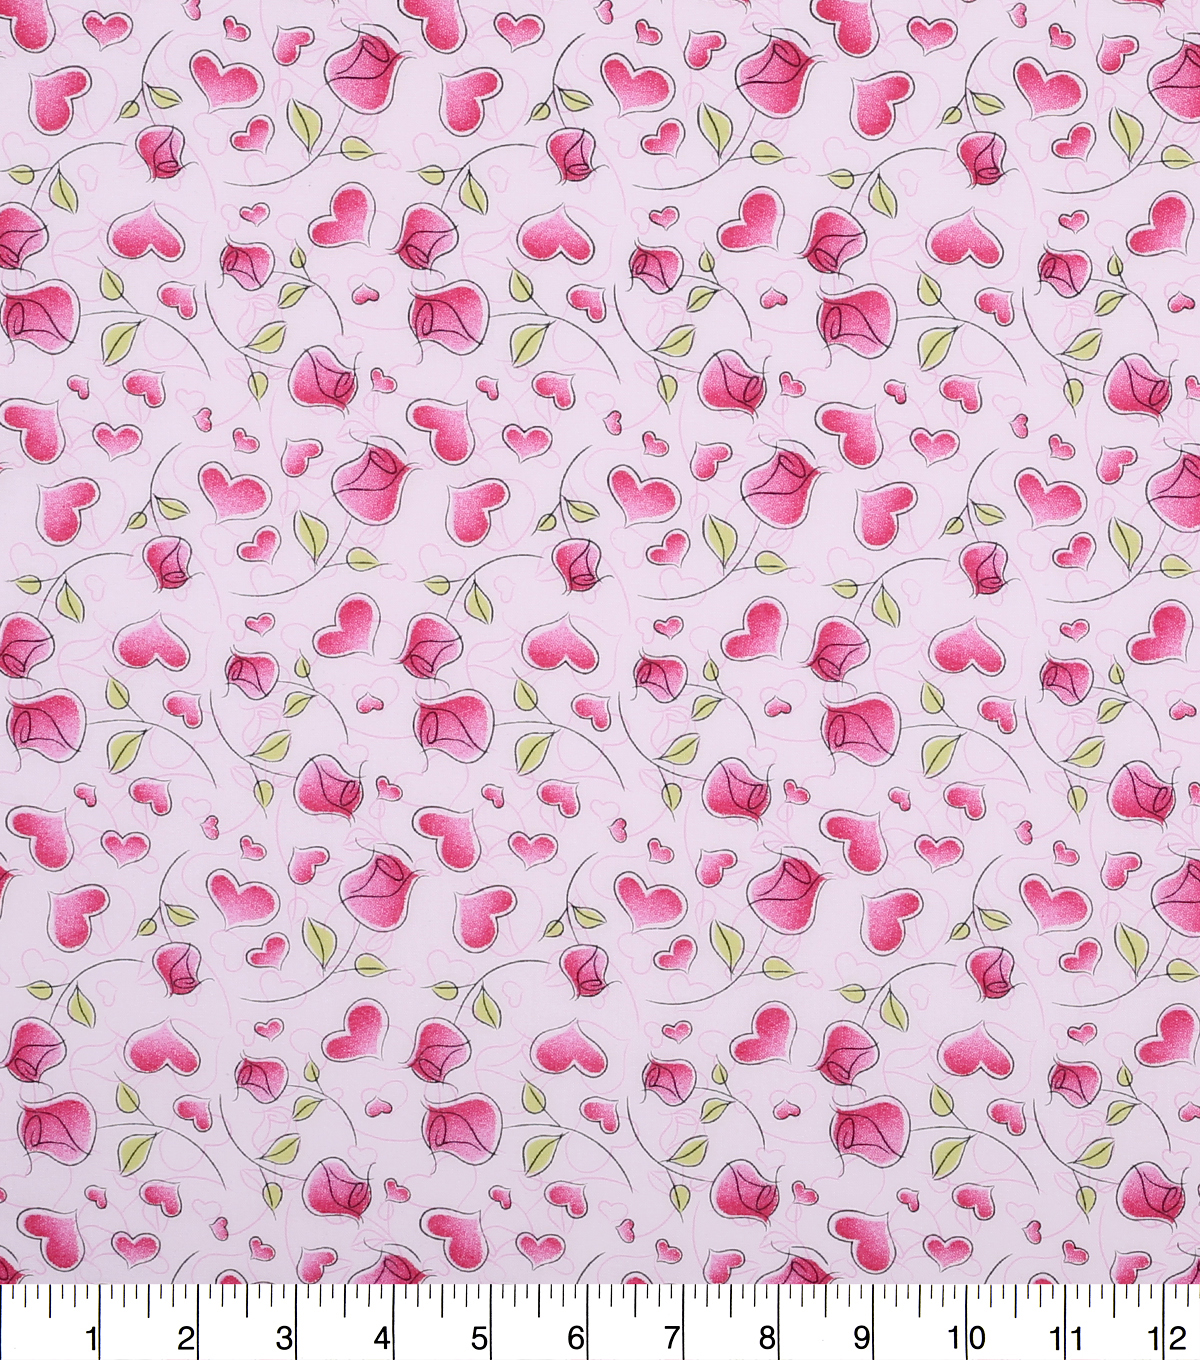 valentineu0027s day print fabric 44u0027u0027 pink with